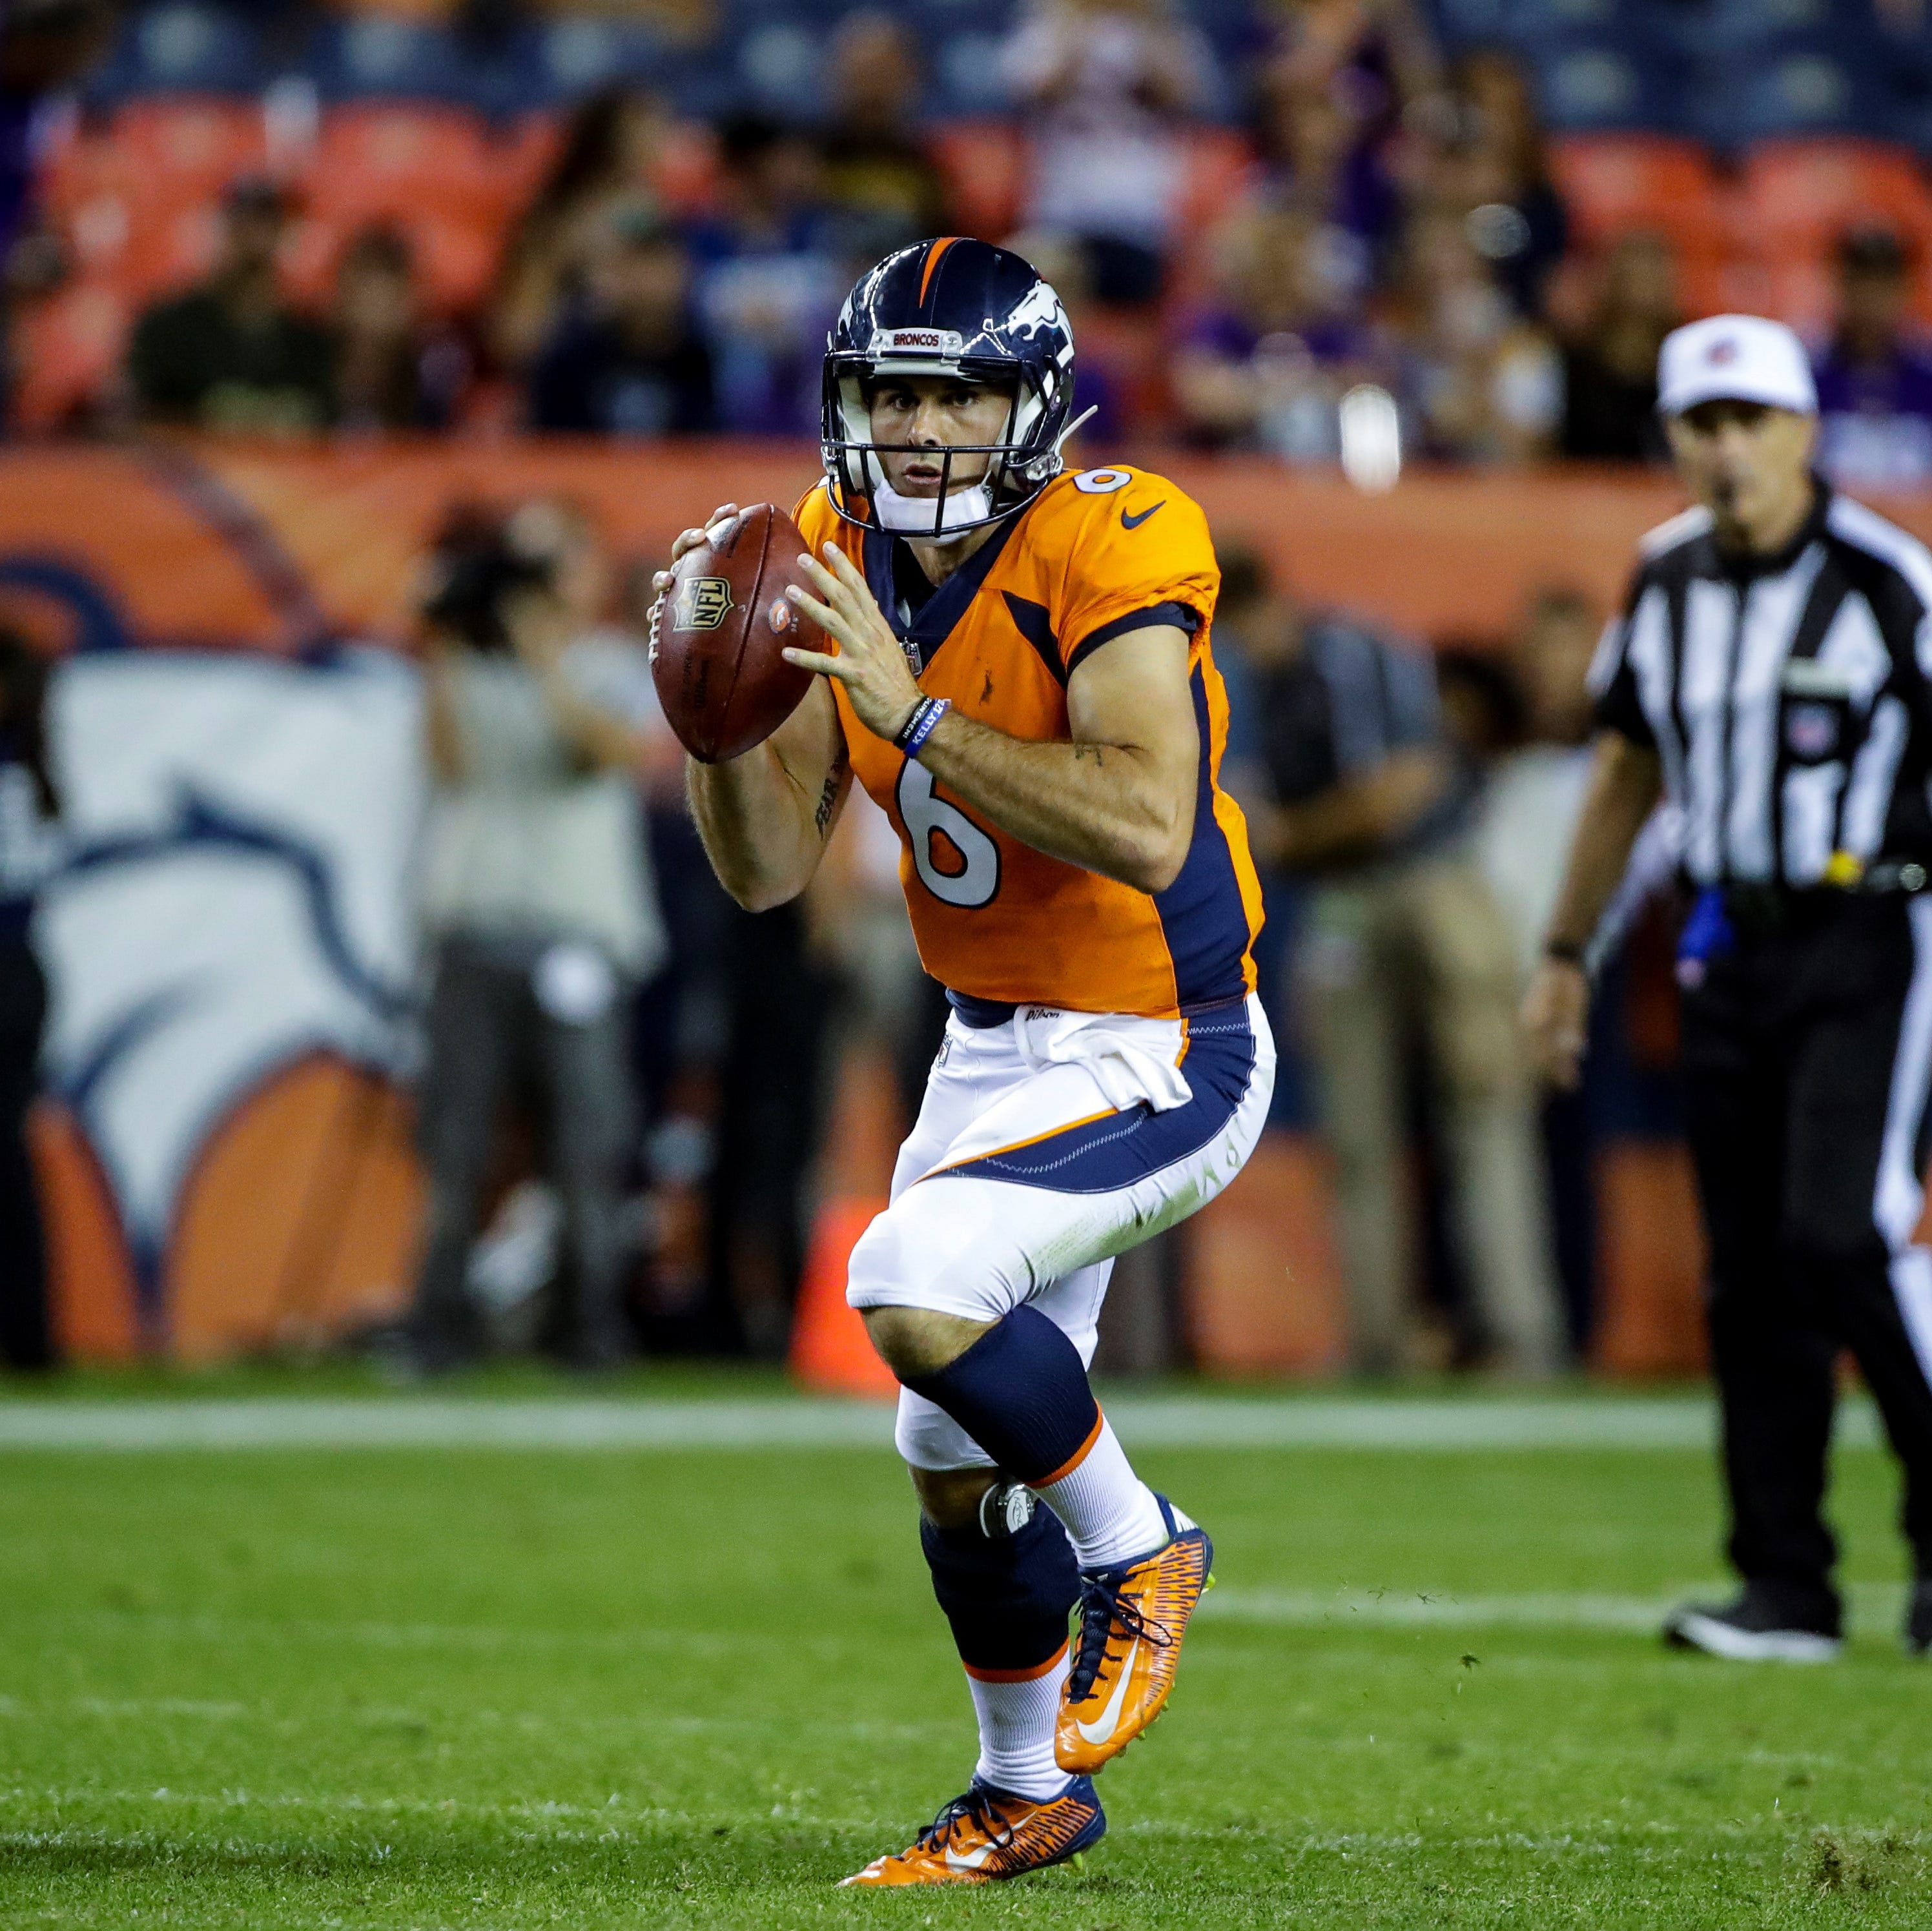 Ex-Red Lion QB Chad Kelly stays focused as fans chant his name after stellar Broncos debut